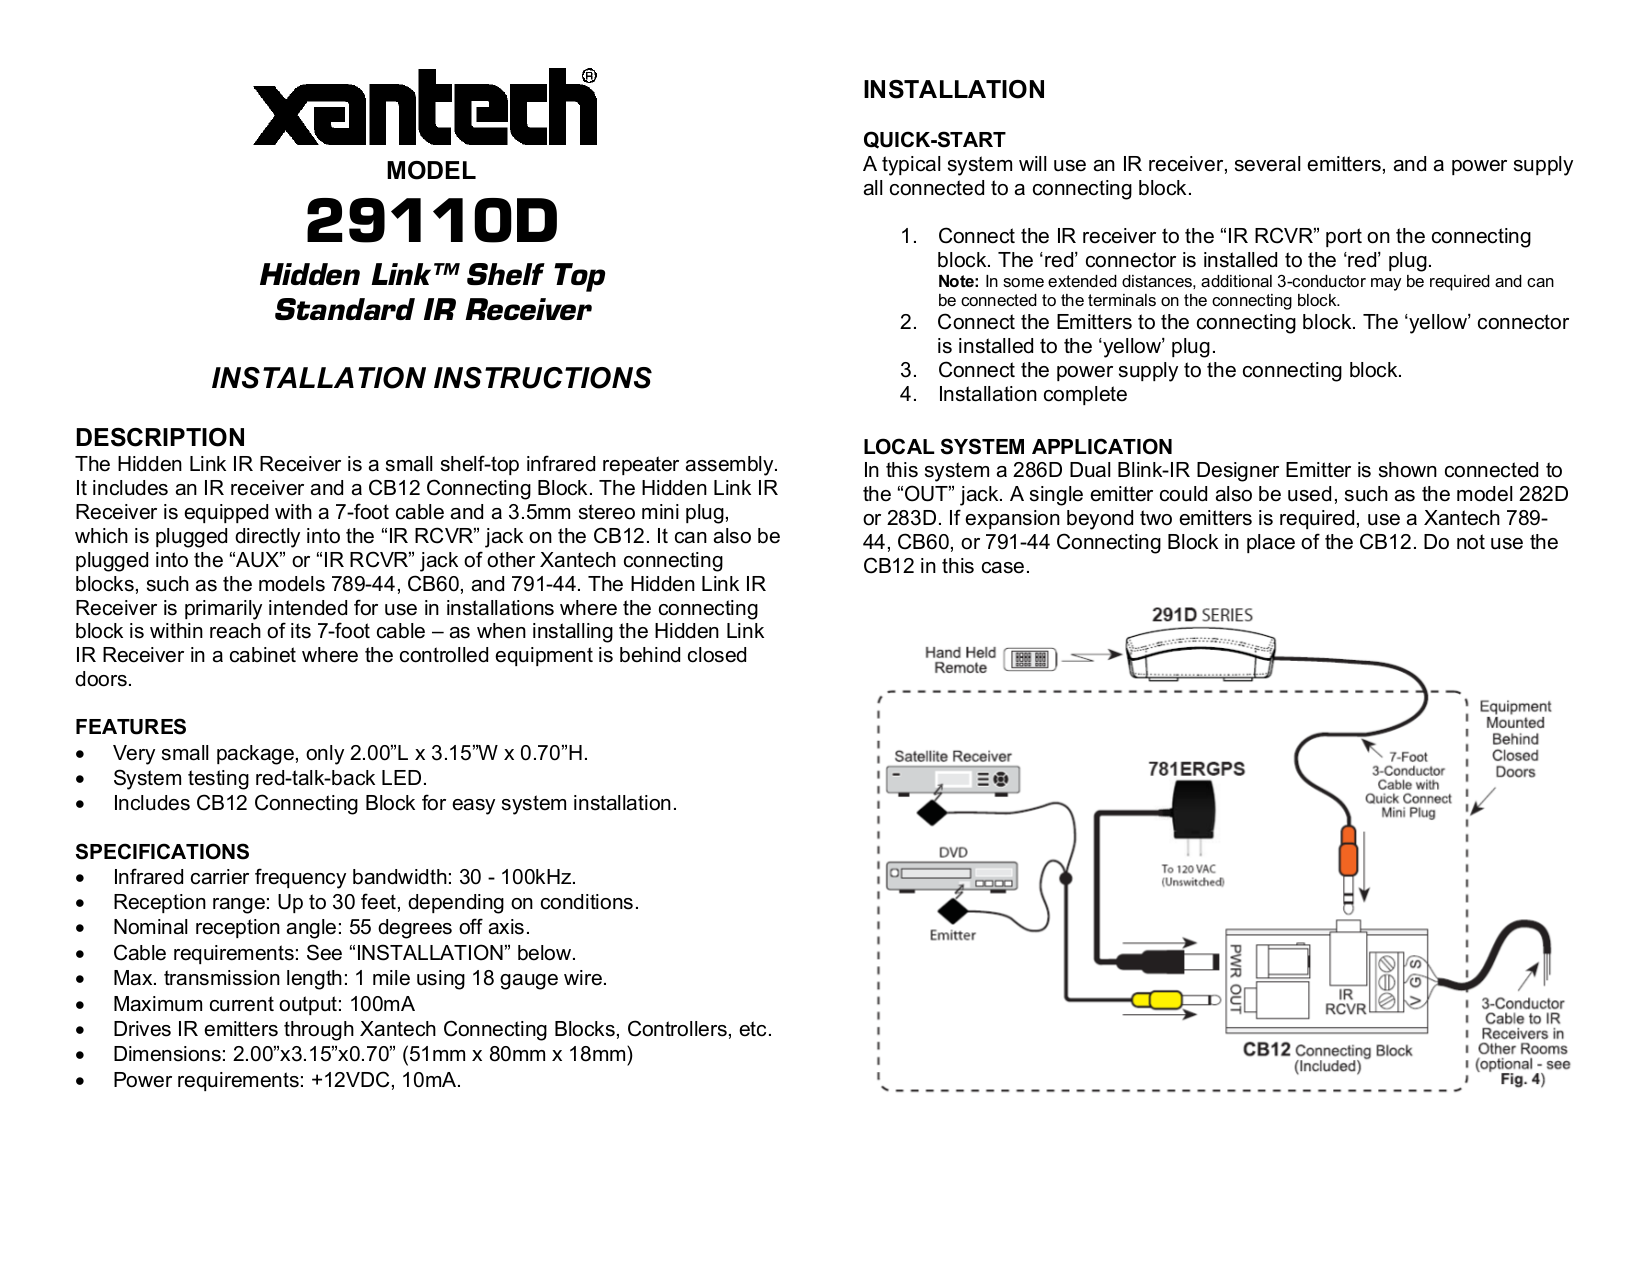 download free pdf for xantech cb12 connecting blocks other manual  pdf for xantech other cb12 connecting blocks manual